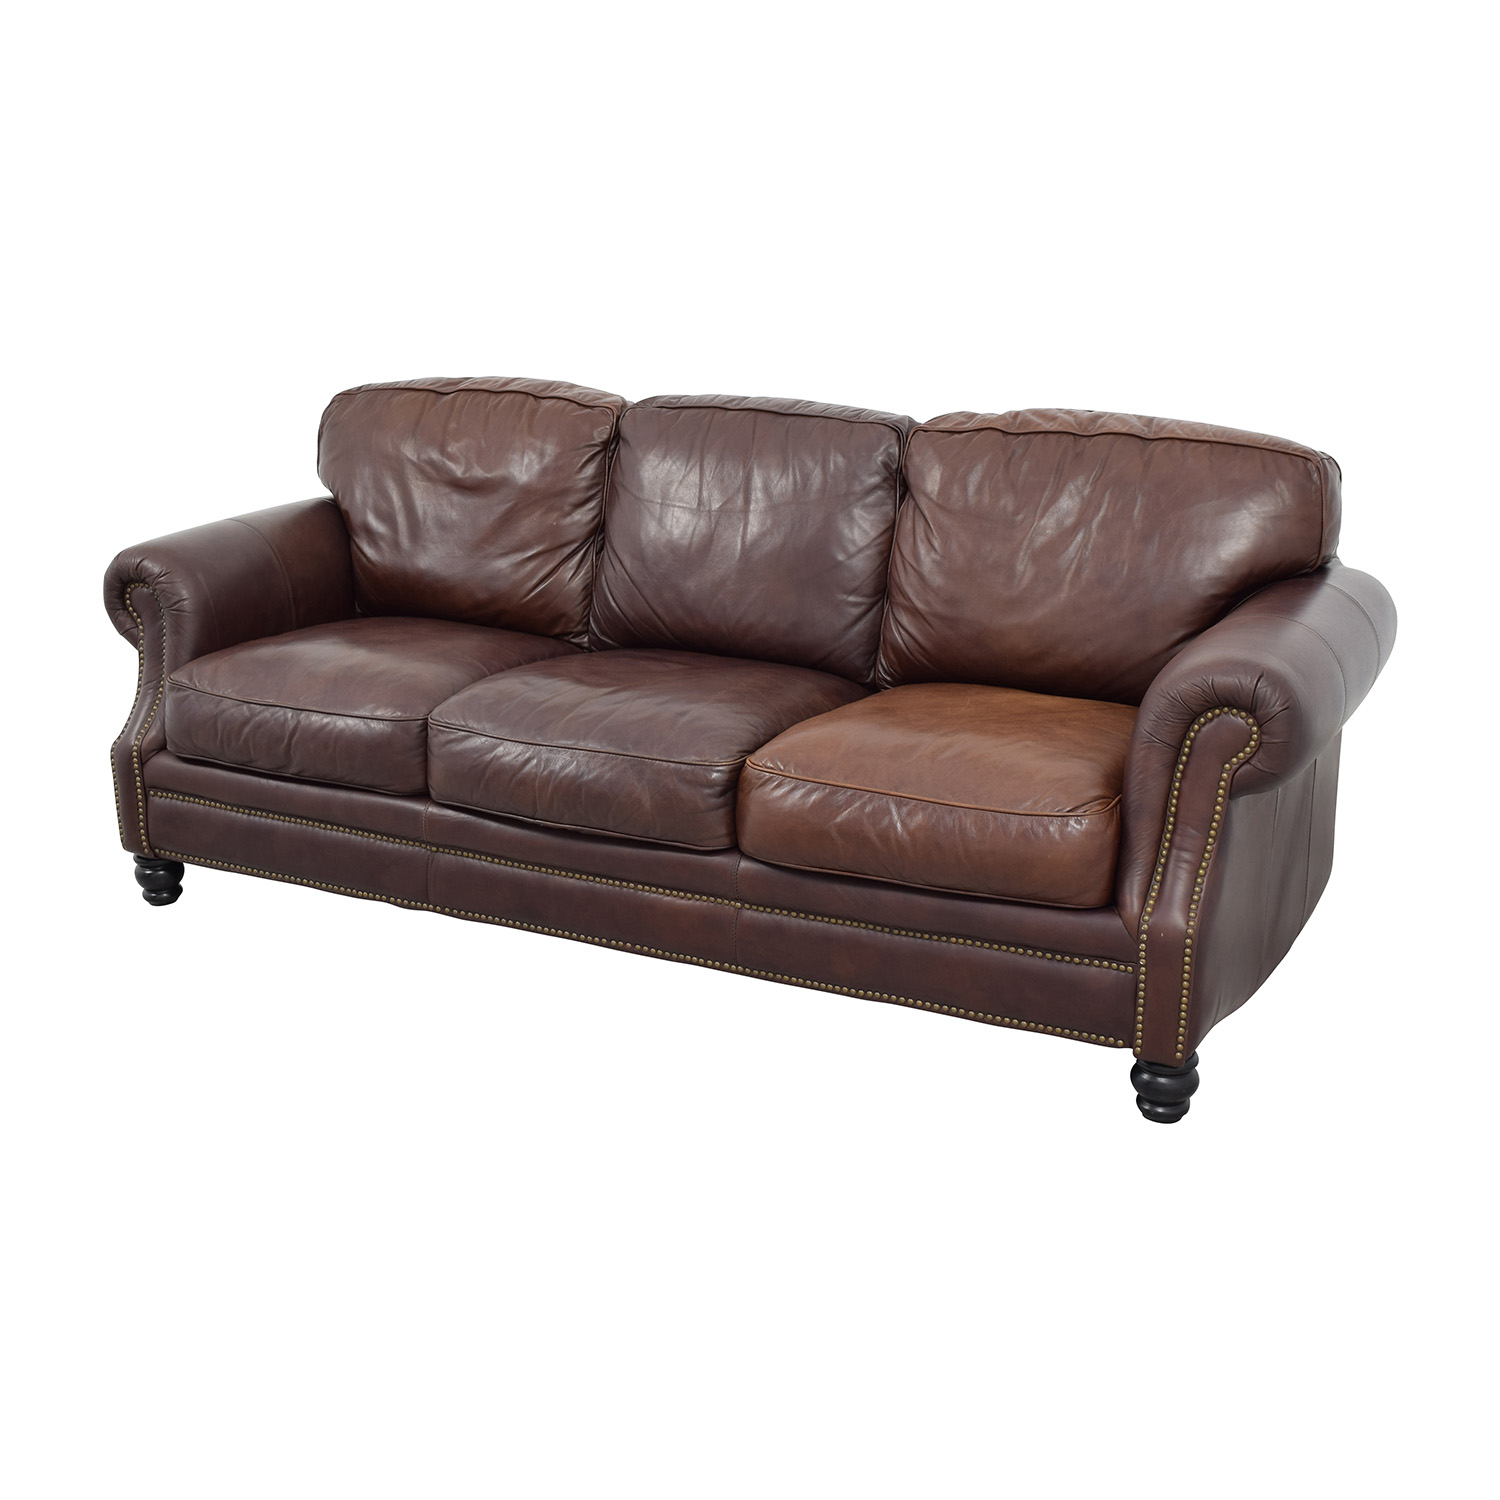 61 off brown leather studded three cushion sofa sofas for Cushions for leather sofas